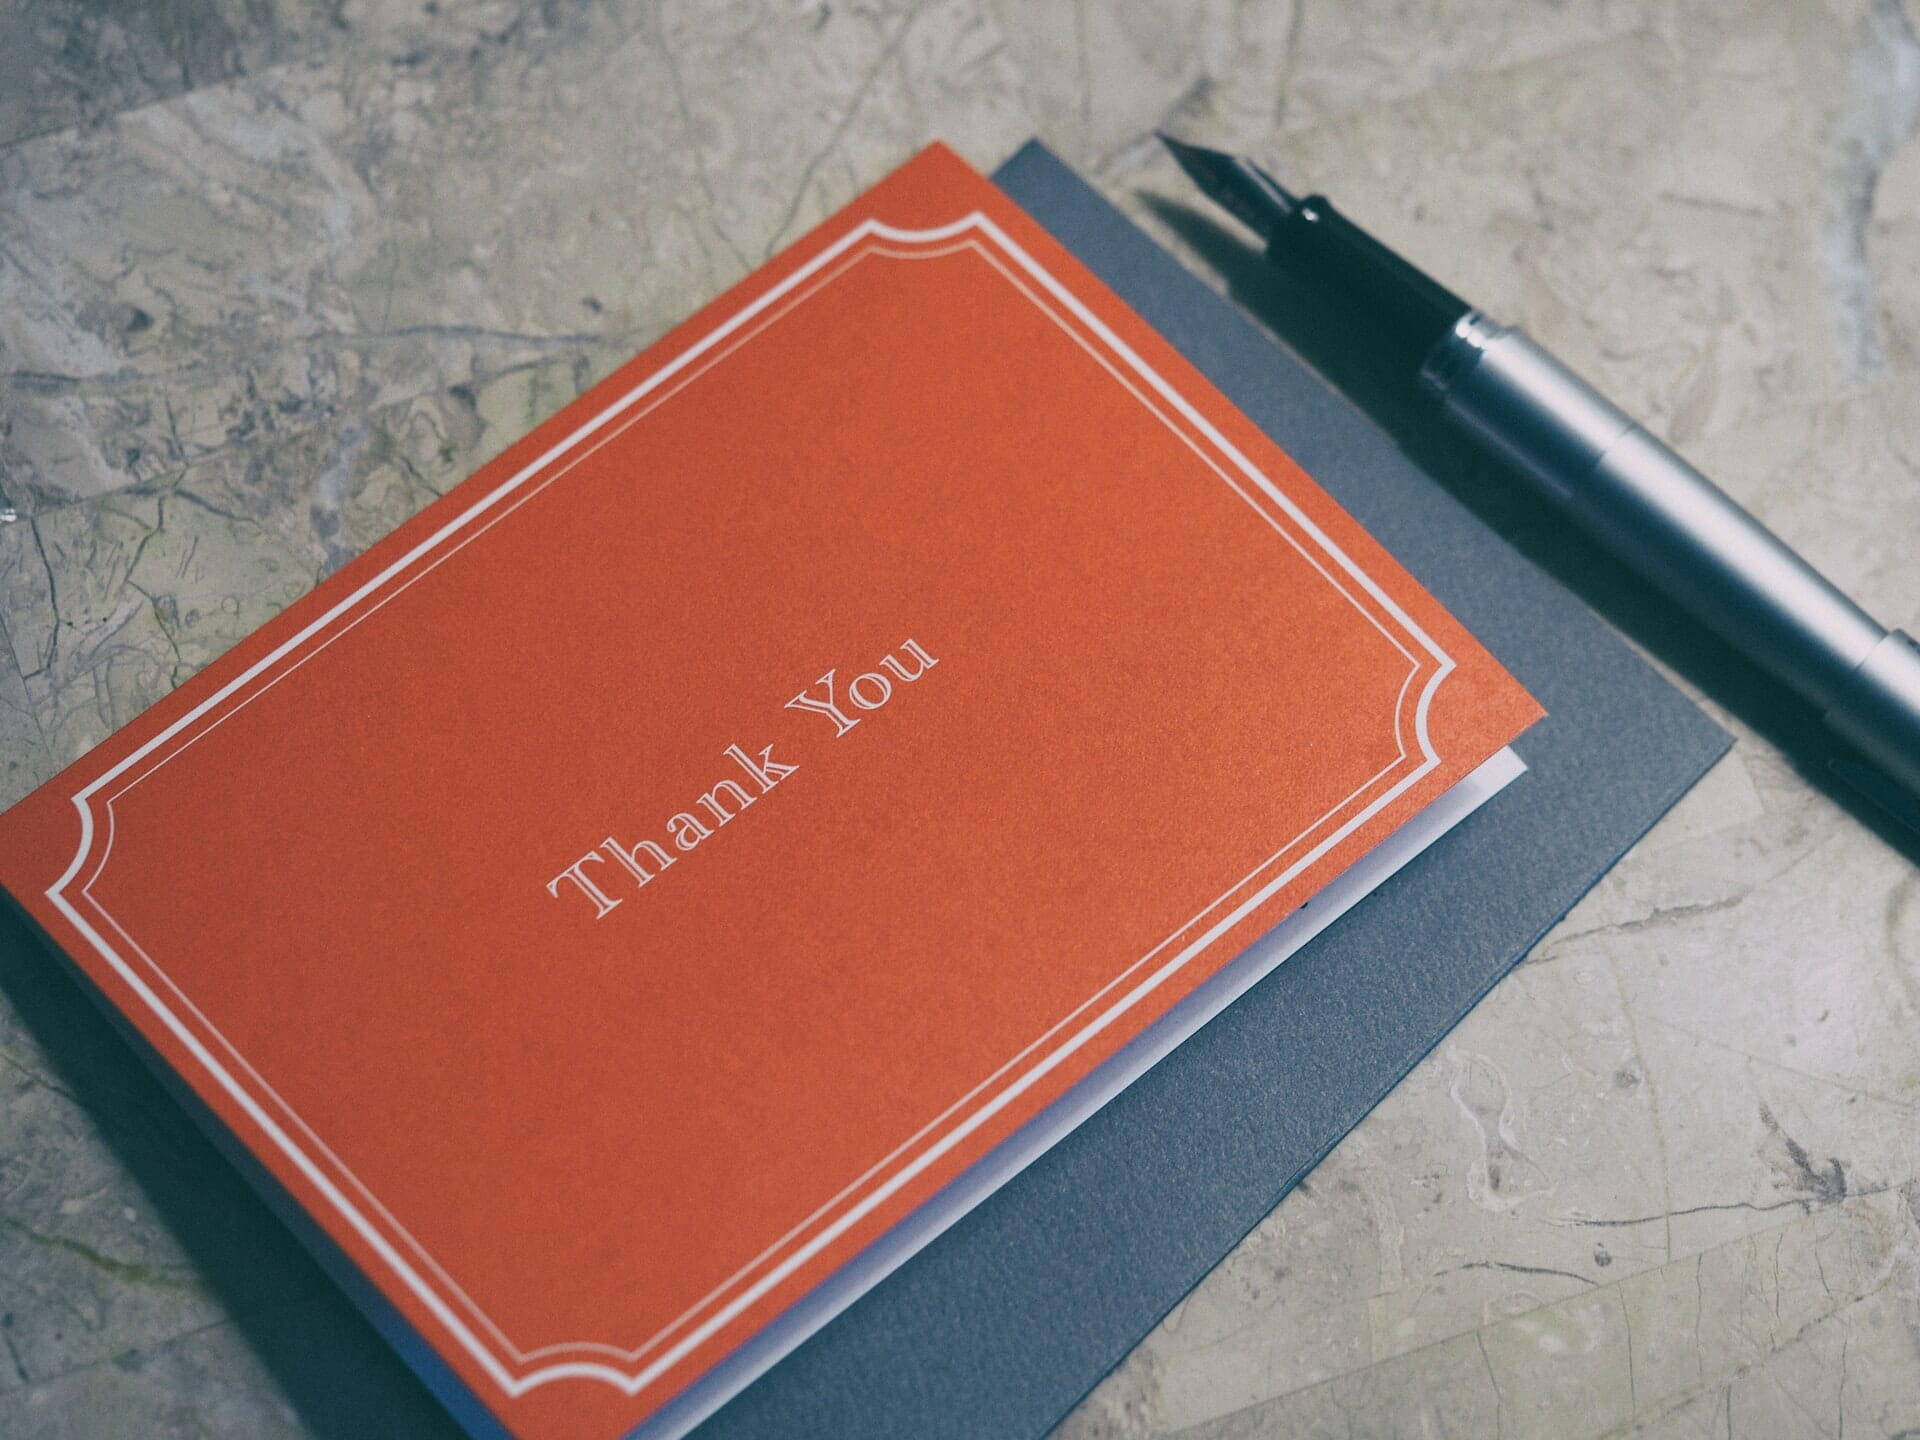 Thank you card, envelope and pen.